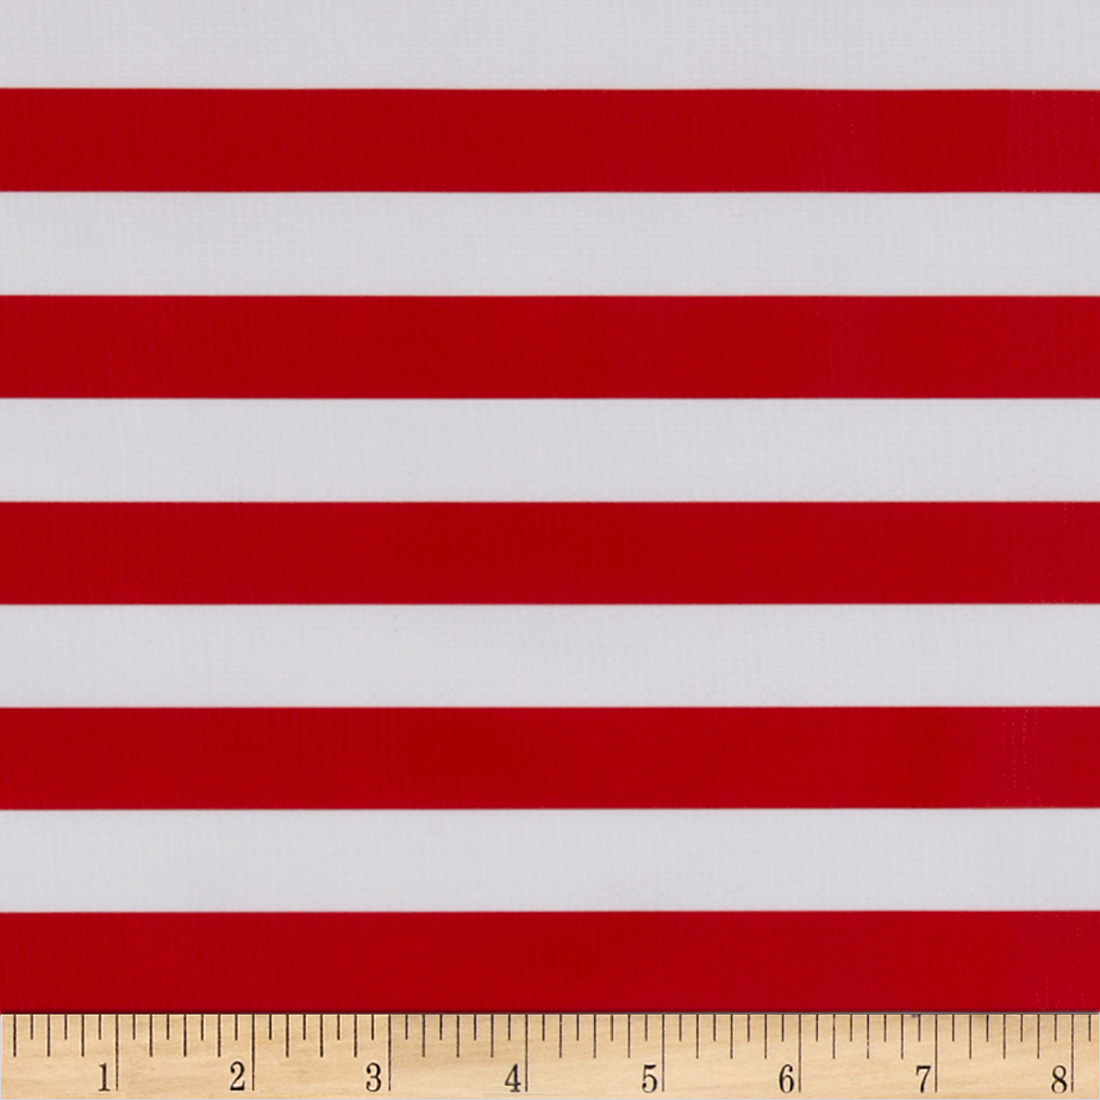 Oilcloth Stripes Red Fabric by Oilcloth International in USA